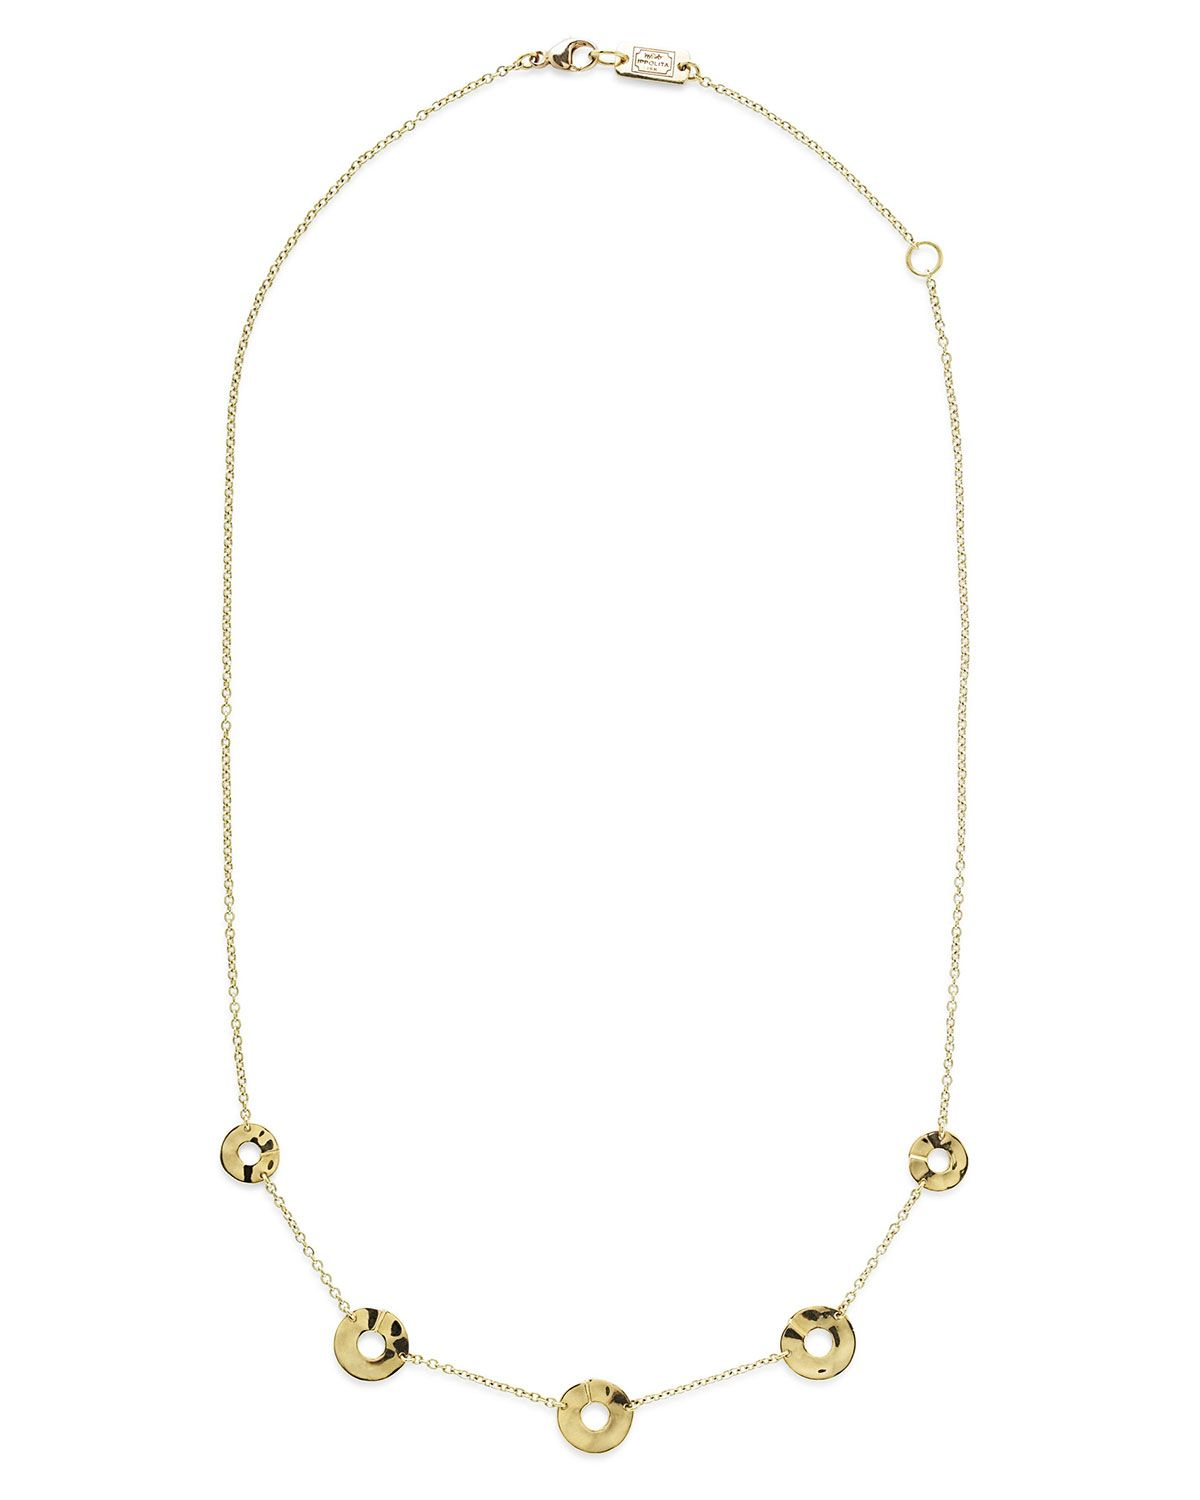 Ippolita 18K Senso & 153 Disc Five-Station Necklace, 18